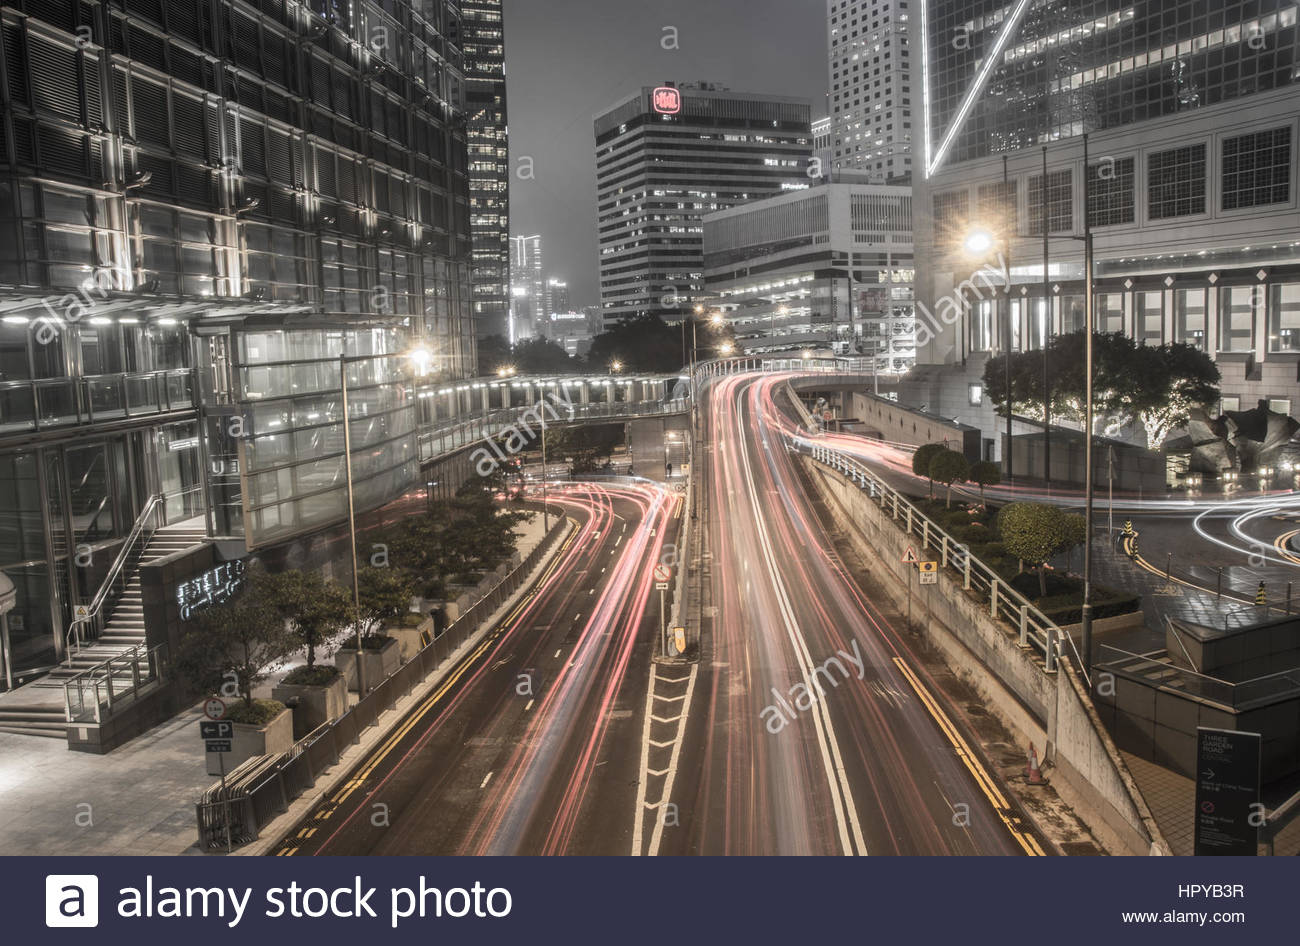 Light Trails in Hong Kong - Stock Image